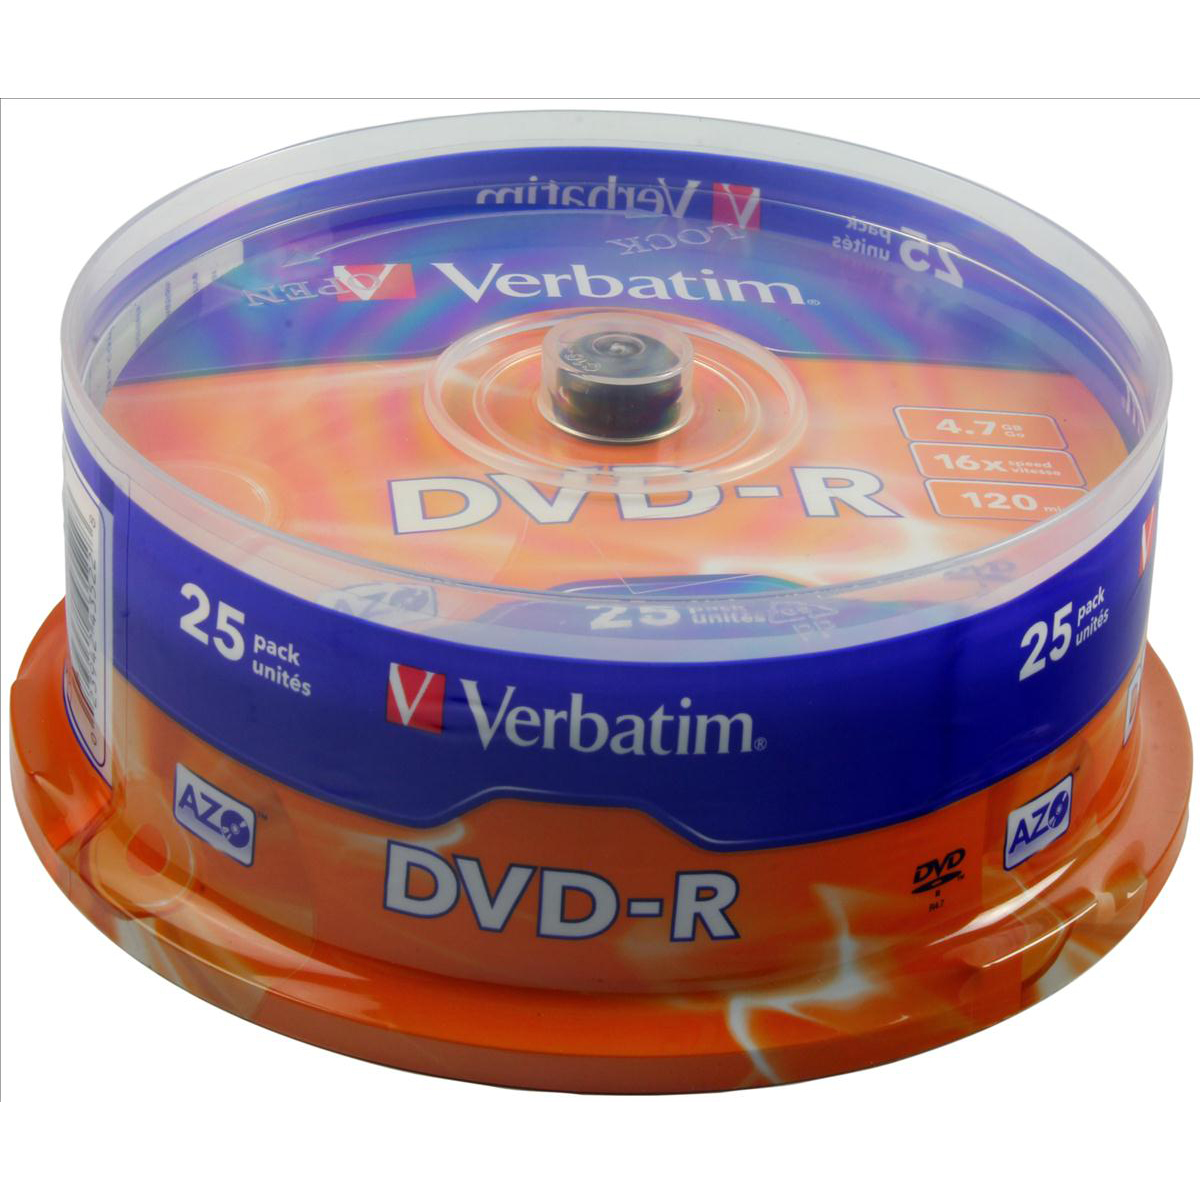 Verbatim DVD-R Spindle Ref 43522-1 Pack 25